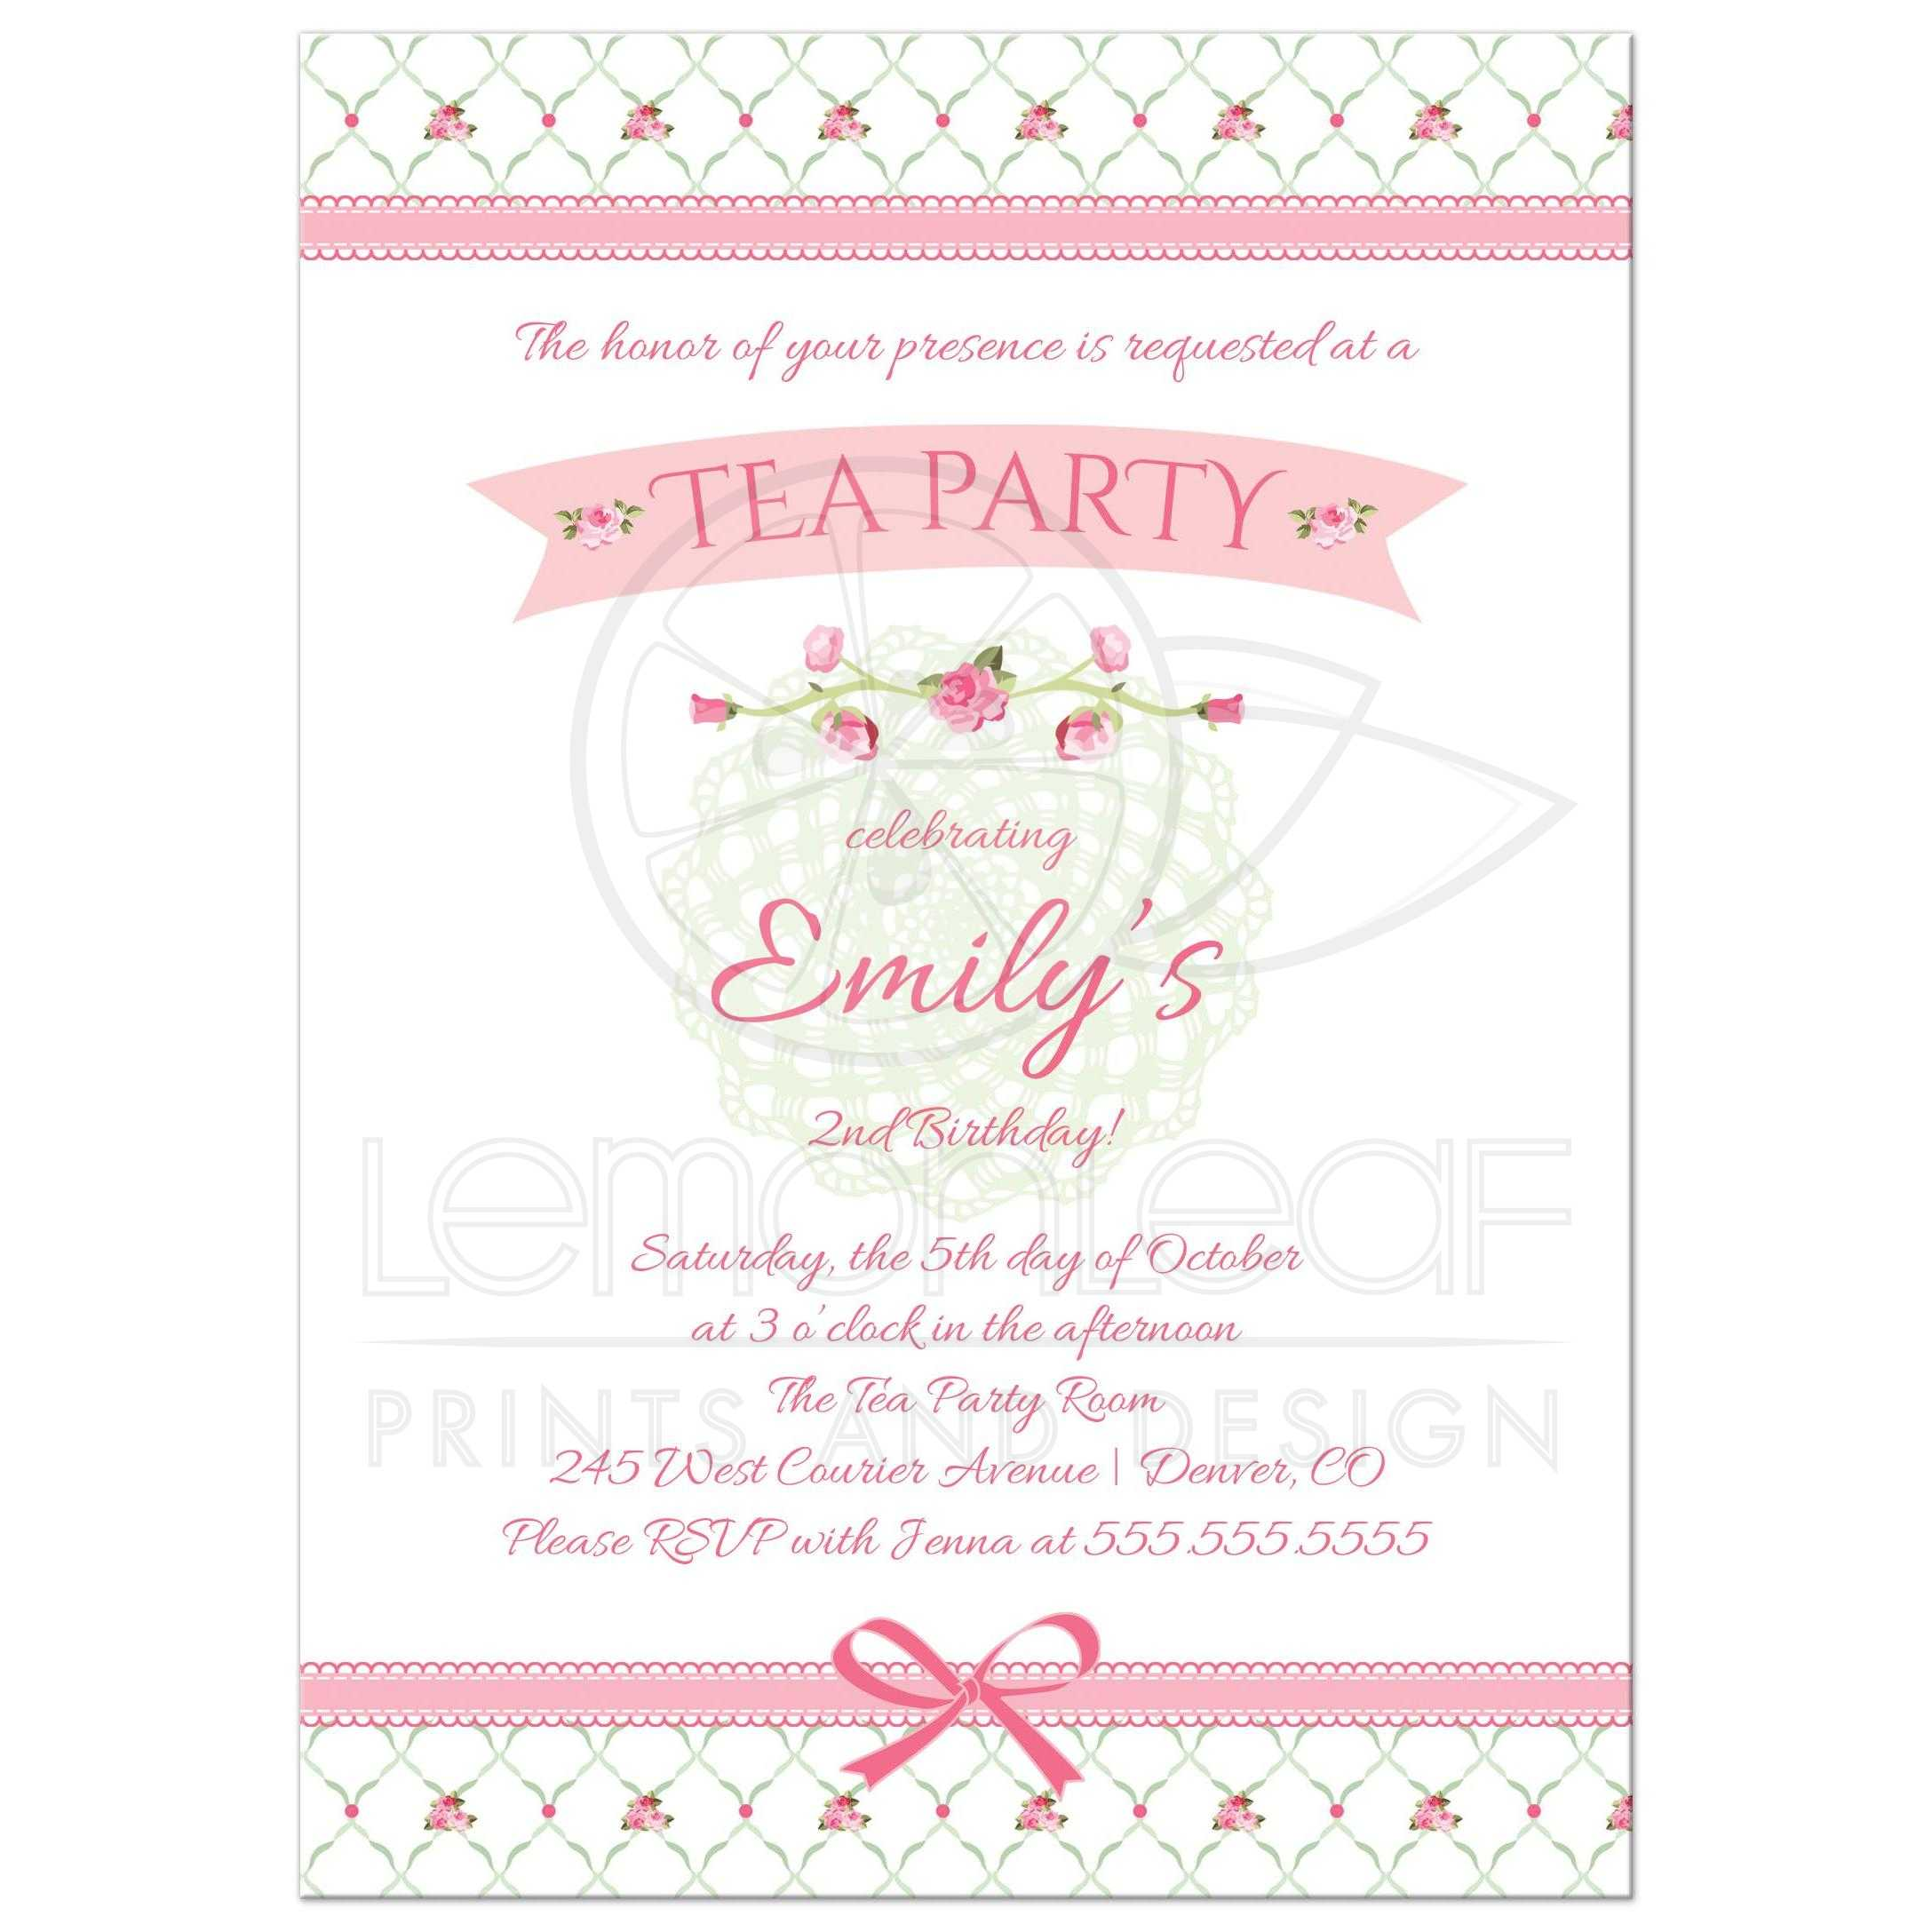 birthday party invitation pink floral tea party